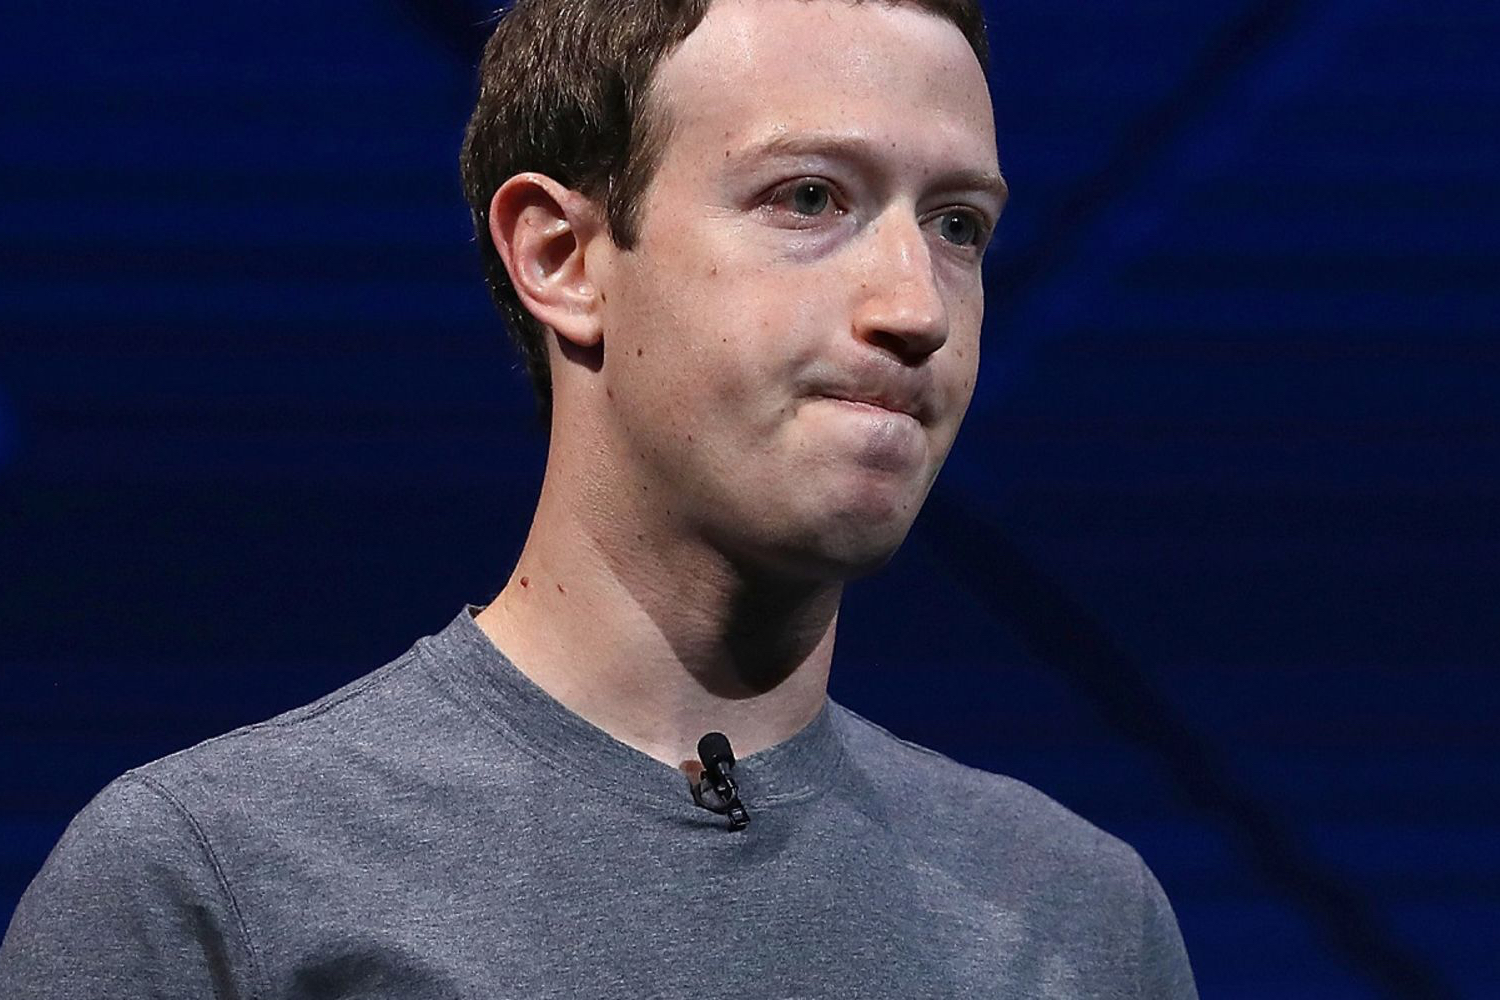 Mark Zuckerberg lost more money than any other billionaire in the world